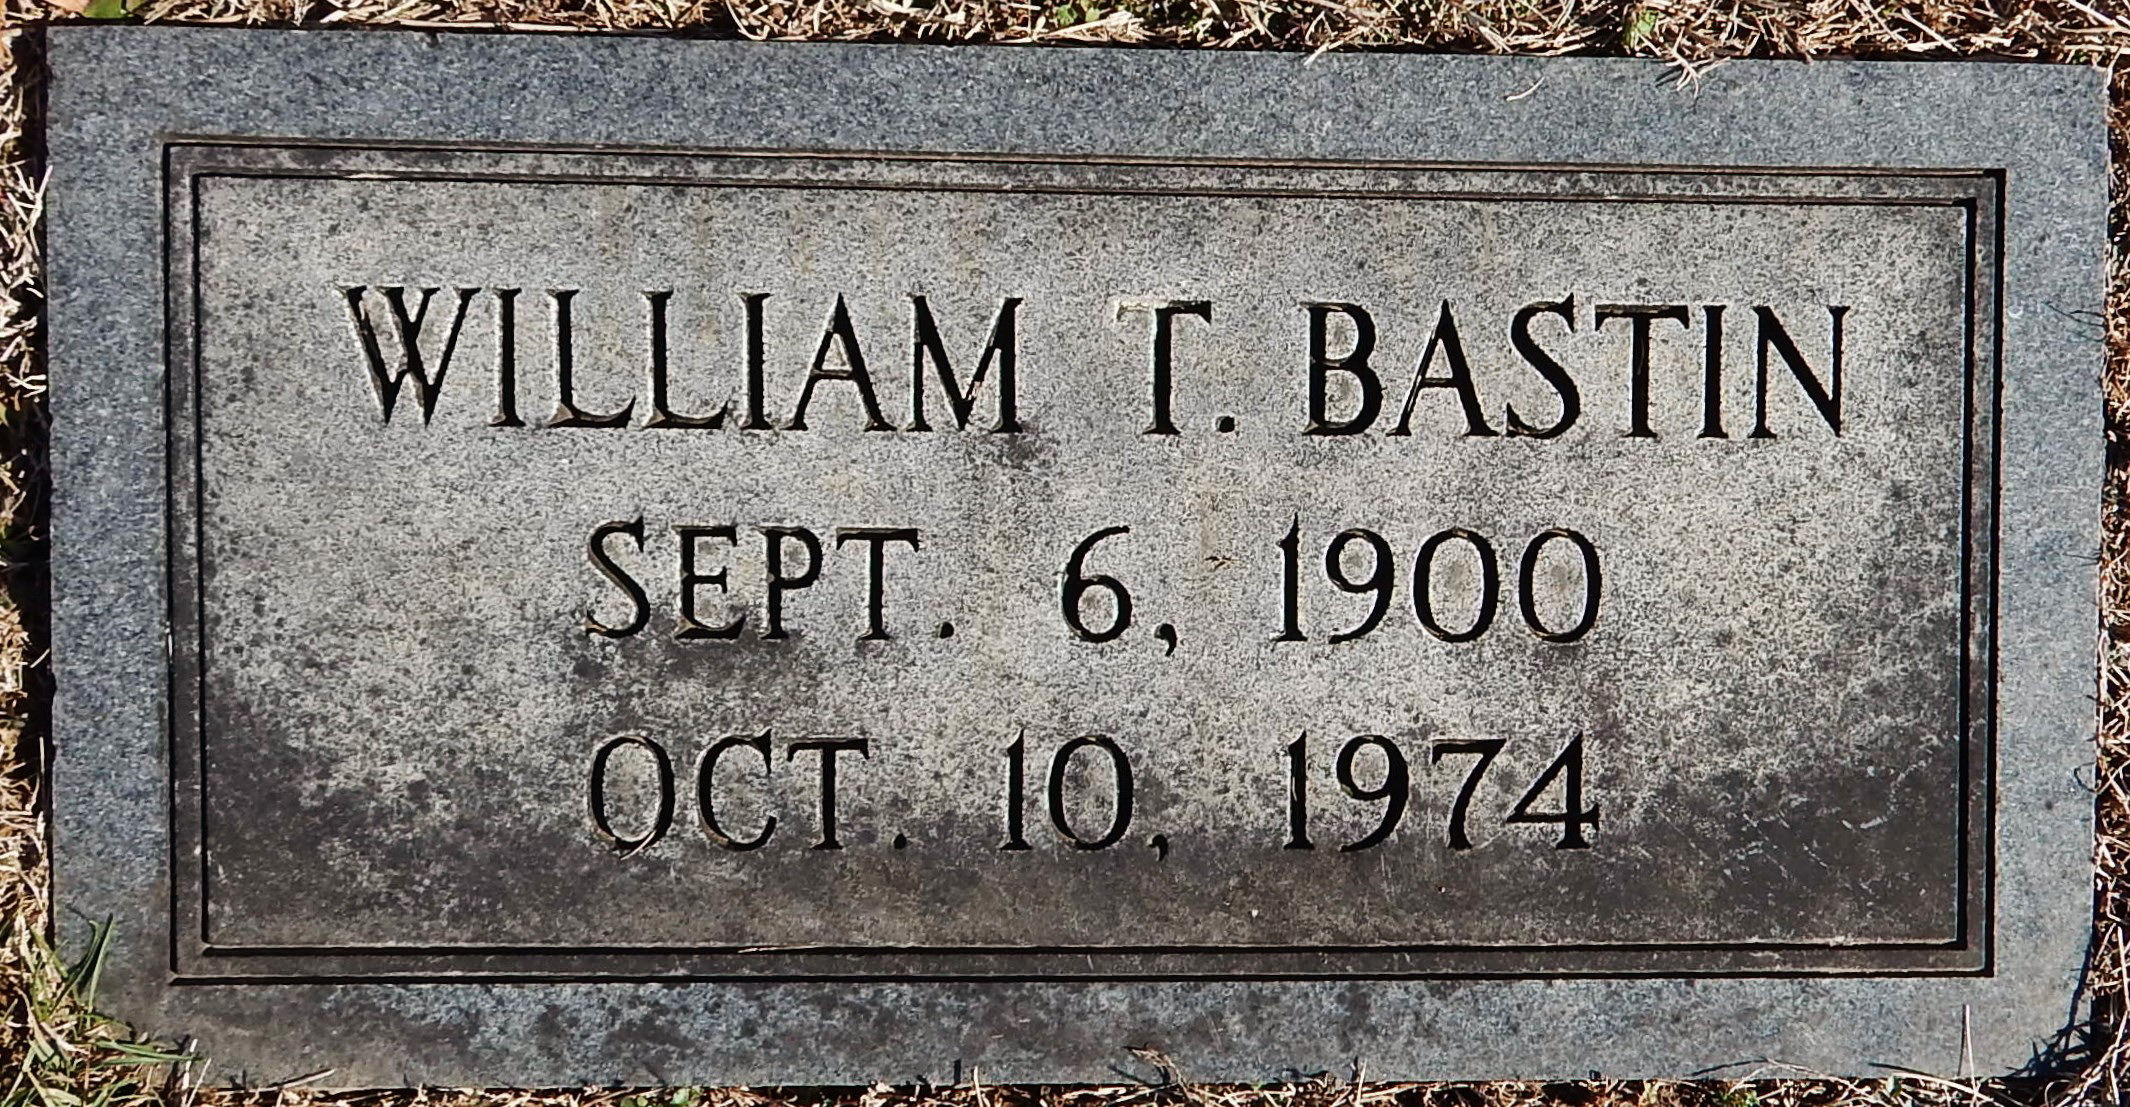 William C Bastin